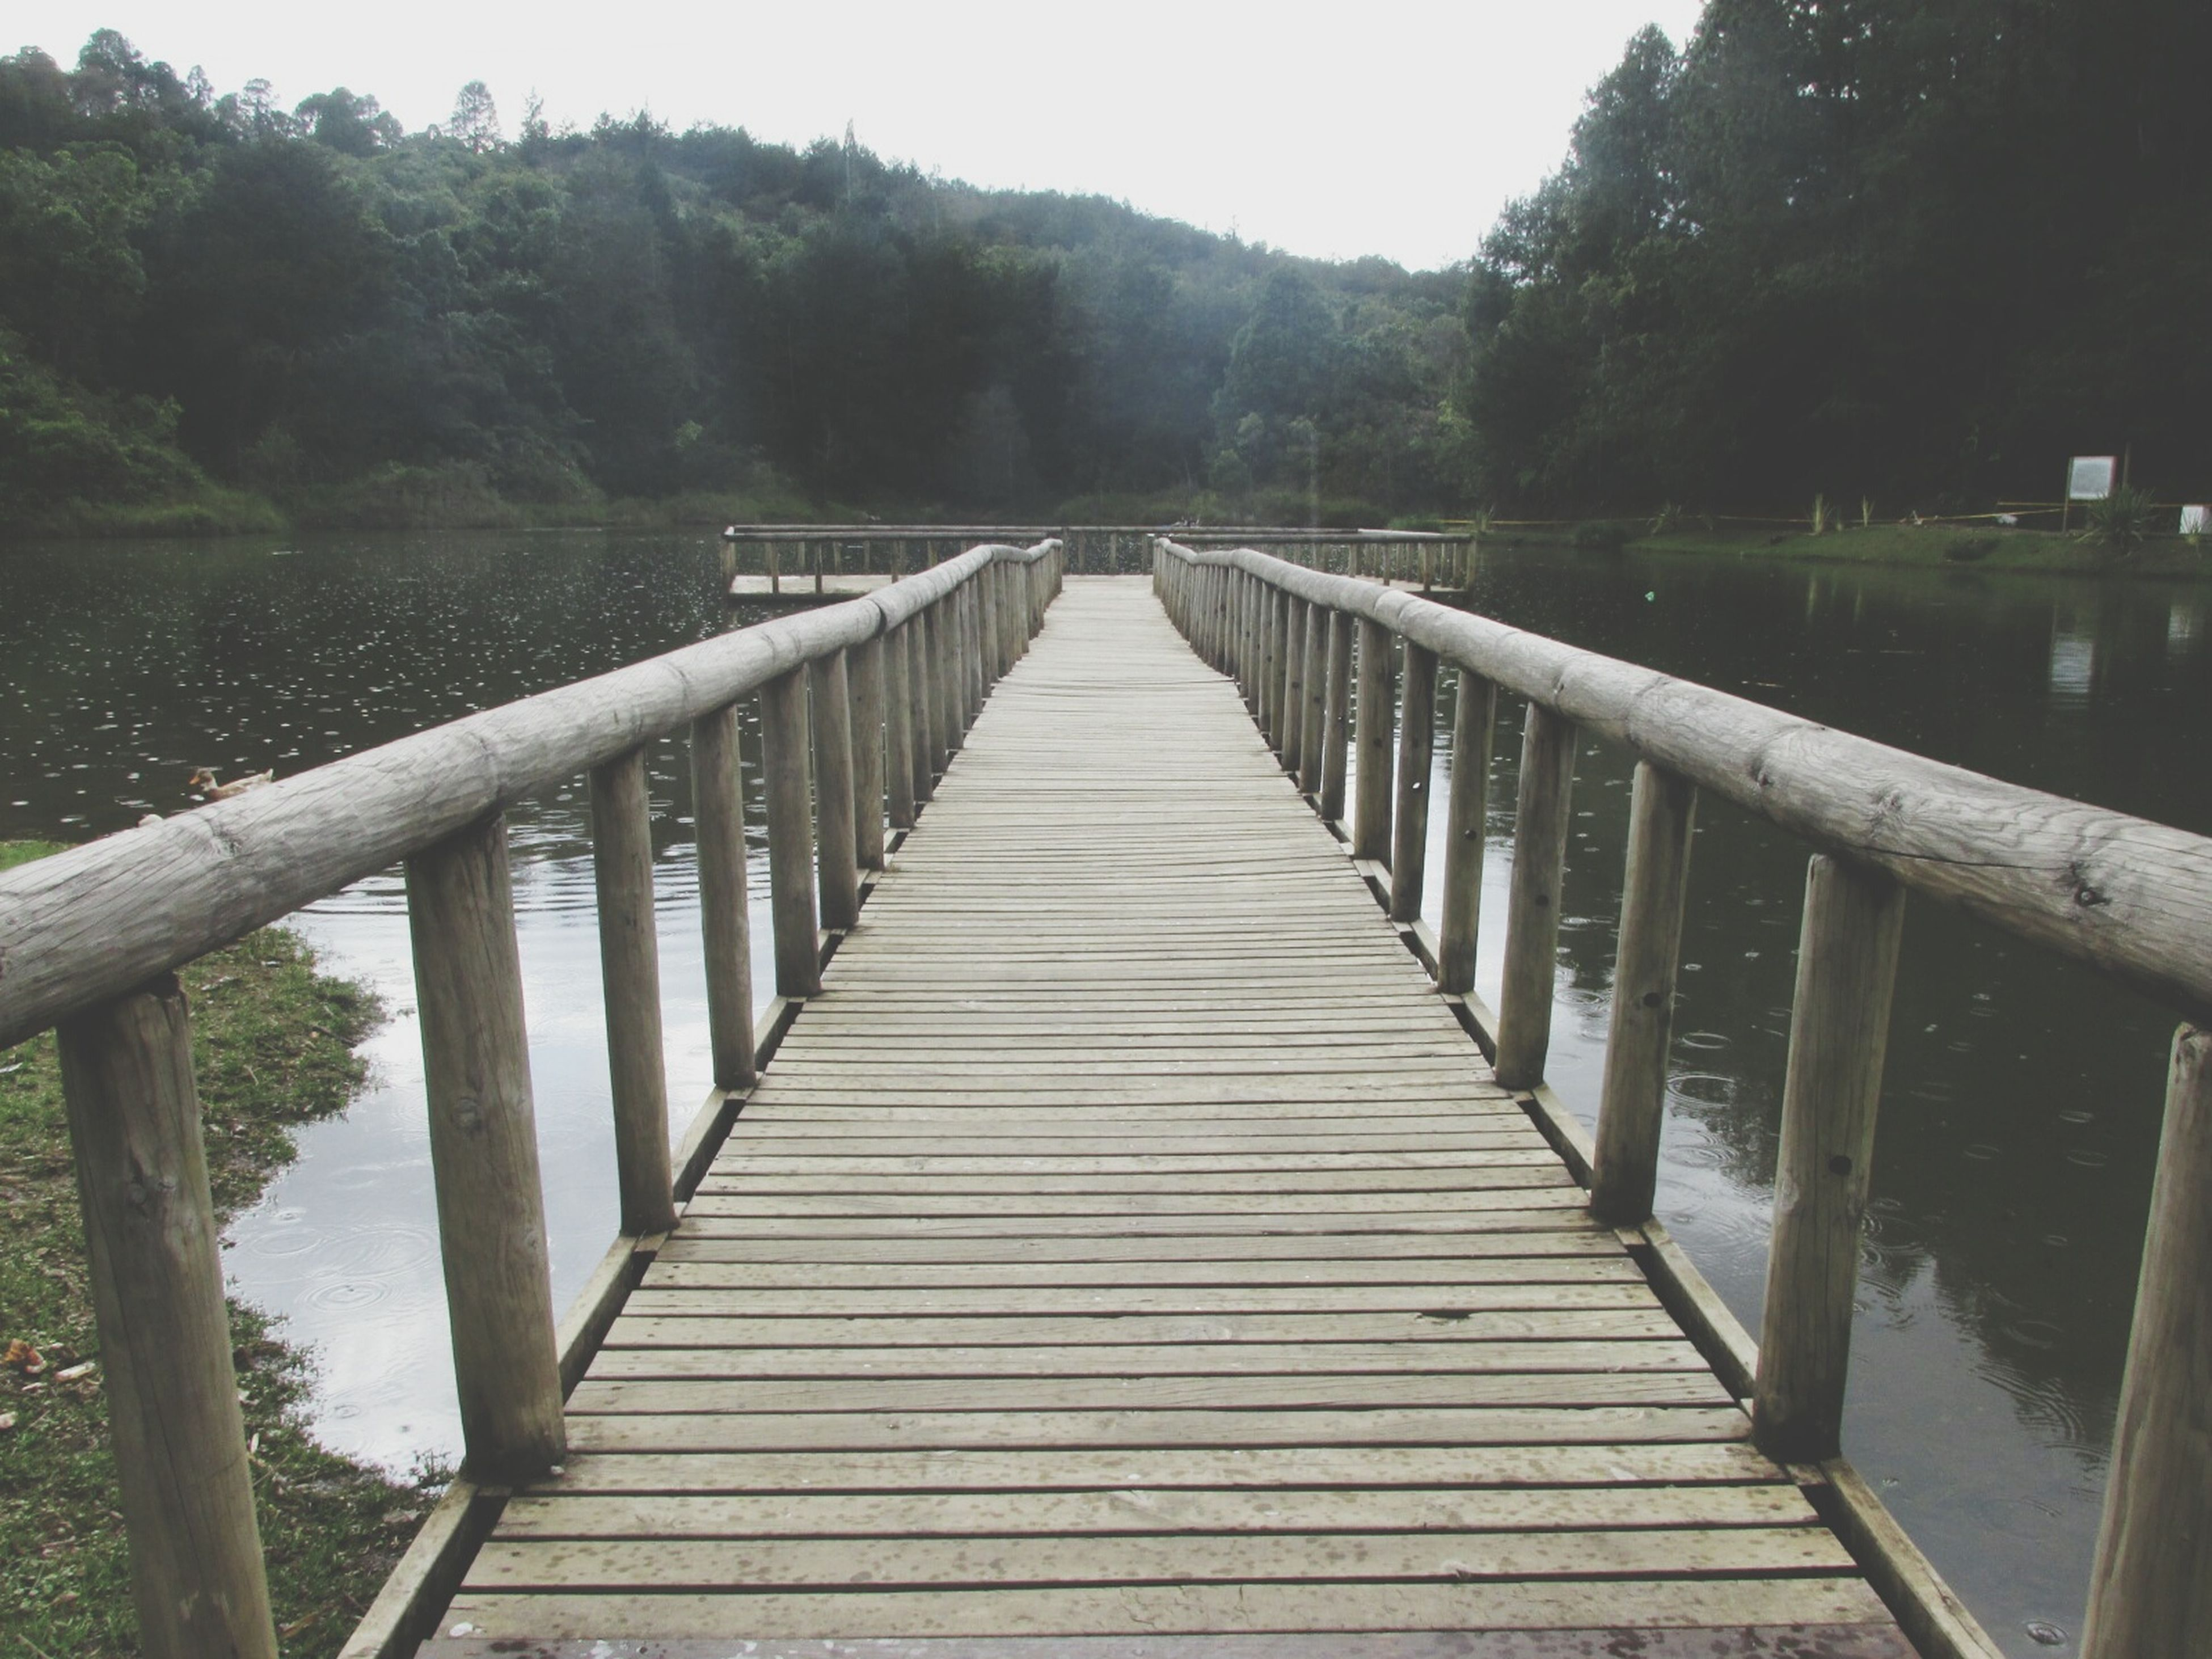 water, the way forward, railing, tree, tranquility, tranquil scene, connection, footbridge, diminishing perspective, wood - material, river, bridge - man made structure, nature, lake, pier, built structure, boardwalk, scenics, beauty in nature, clear sky